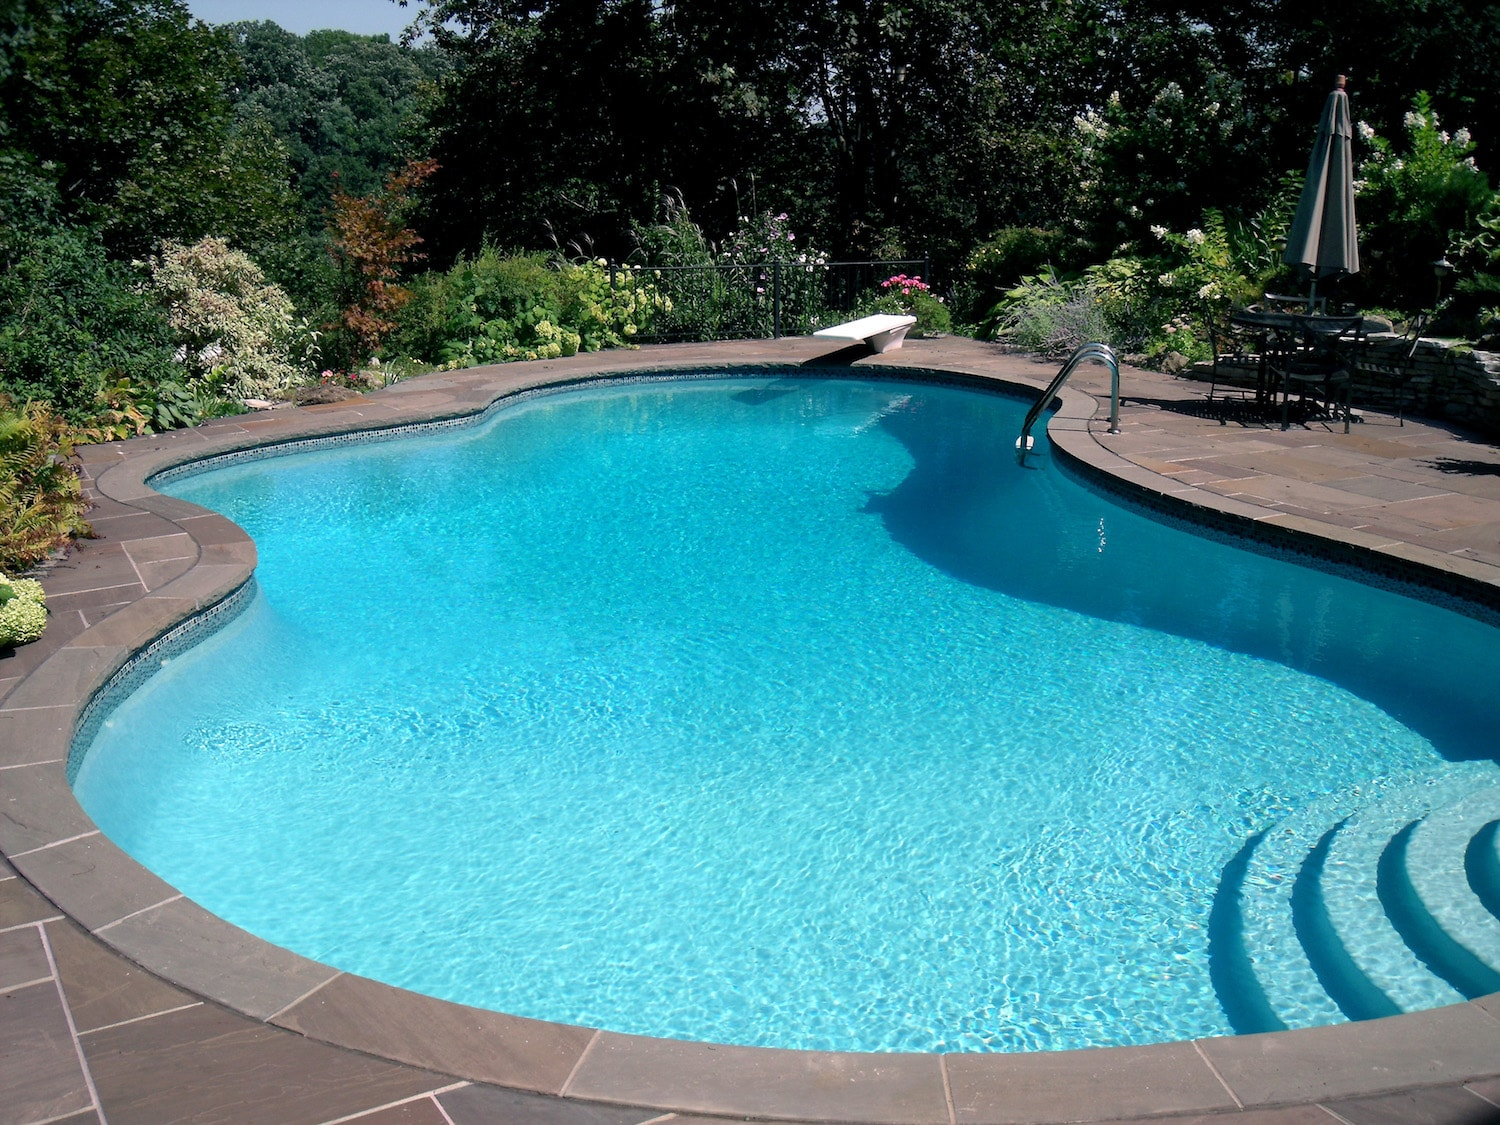 Pool Coping Replacement